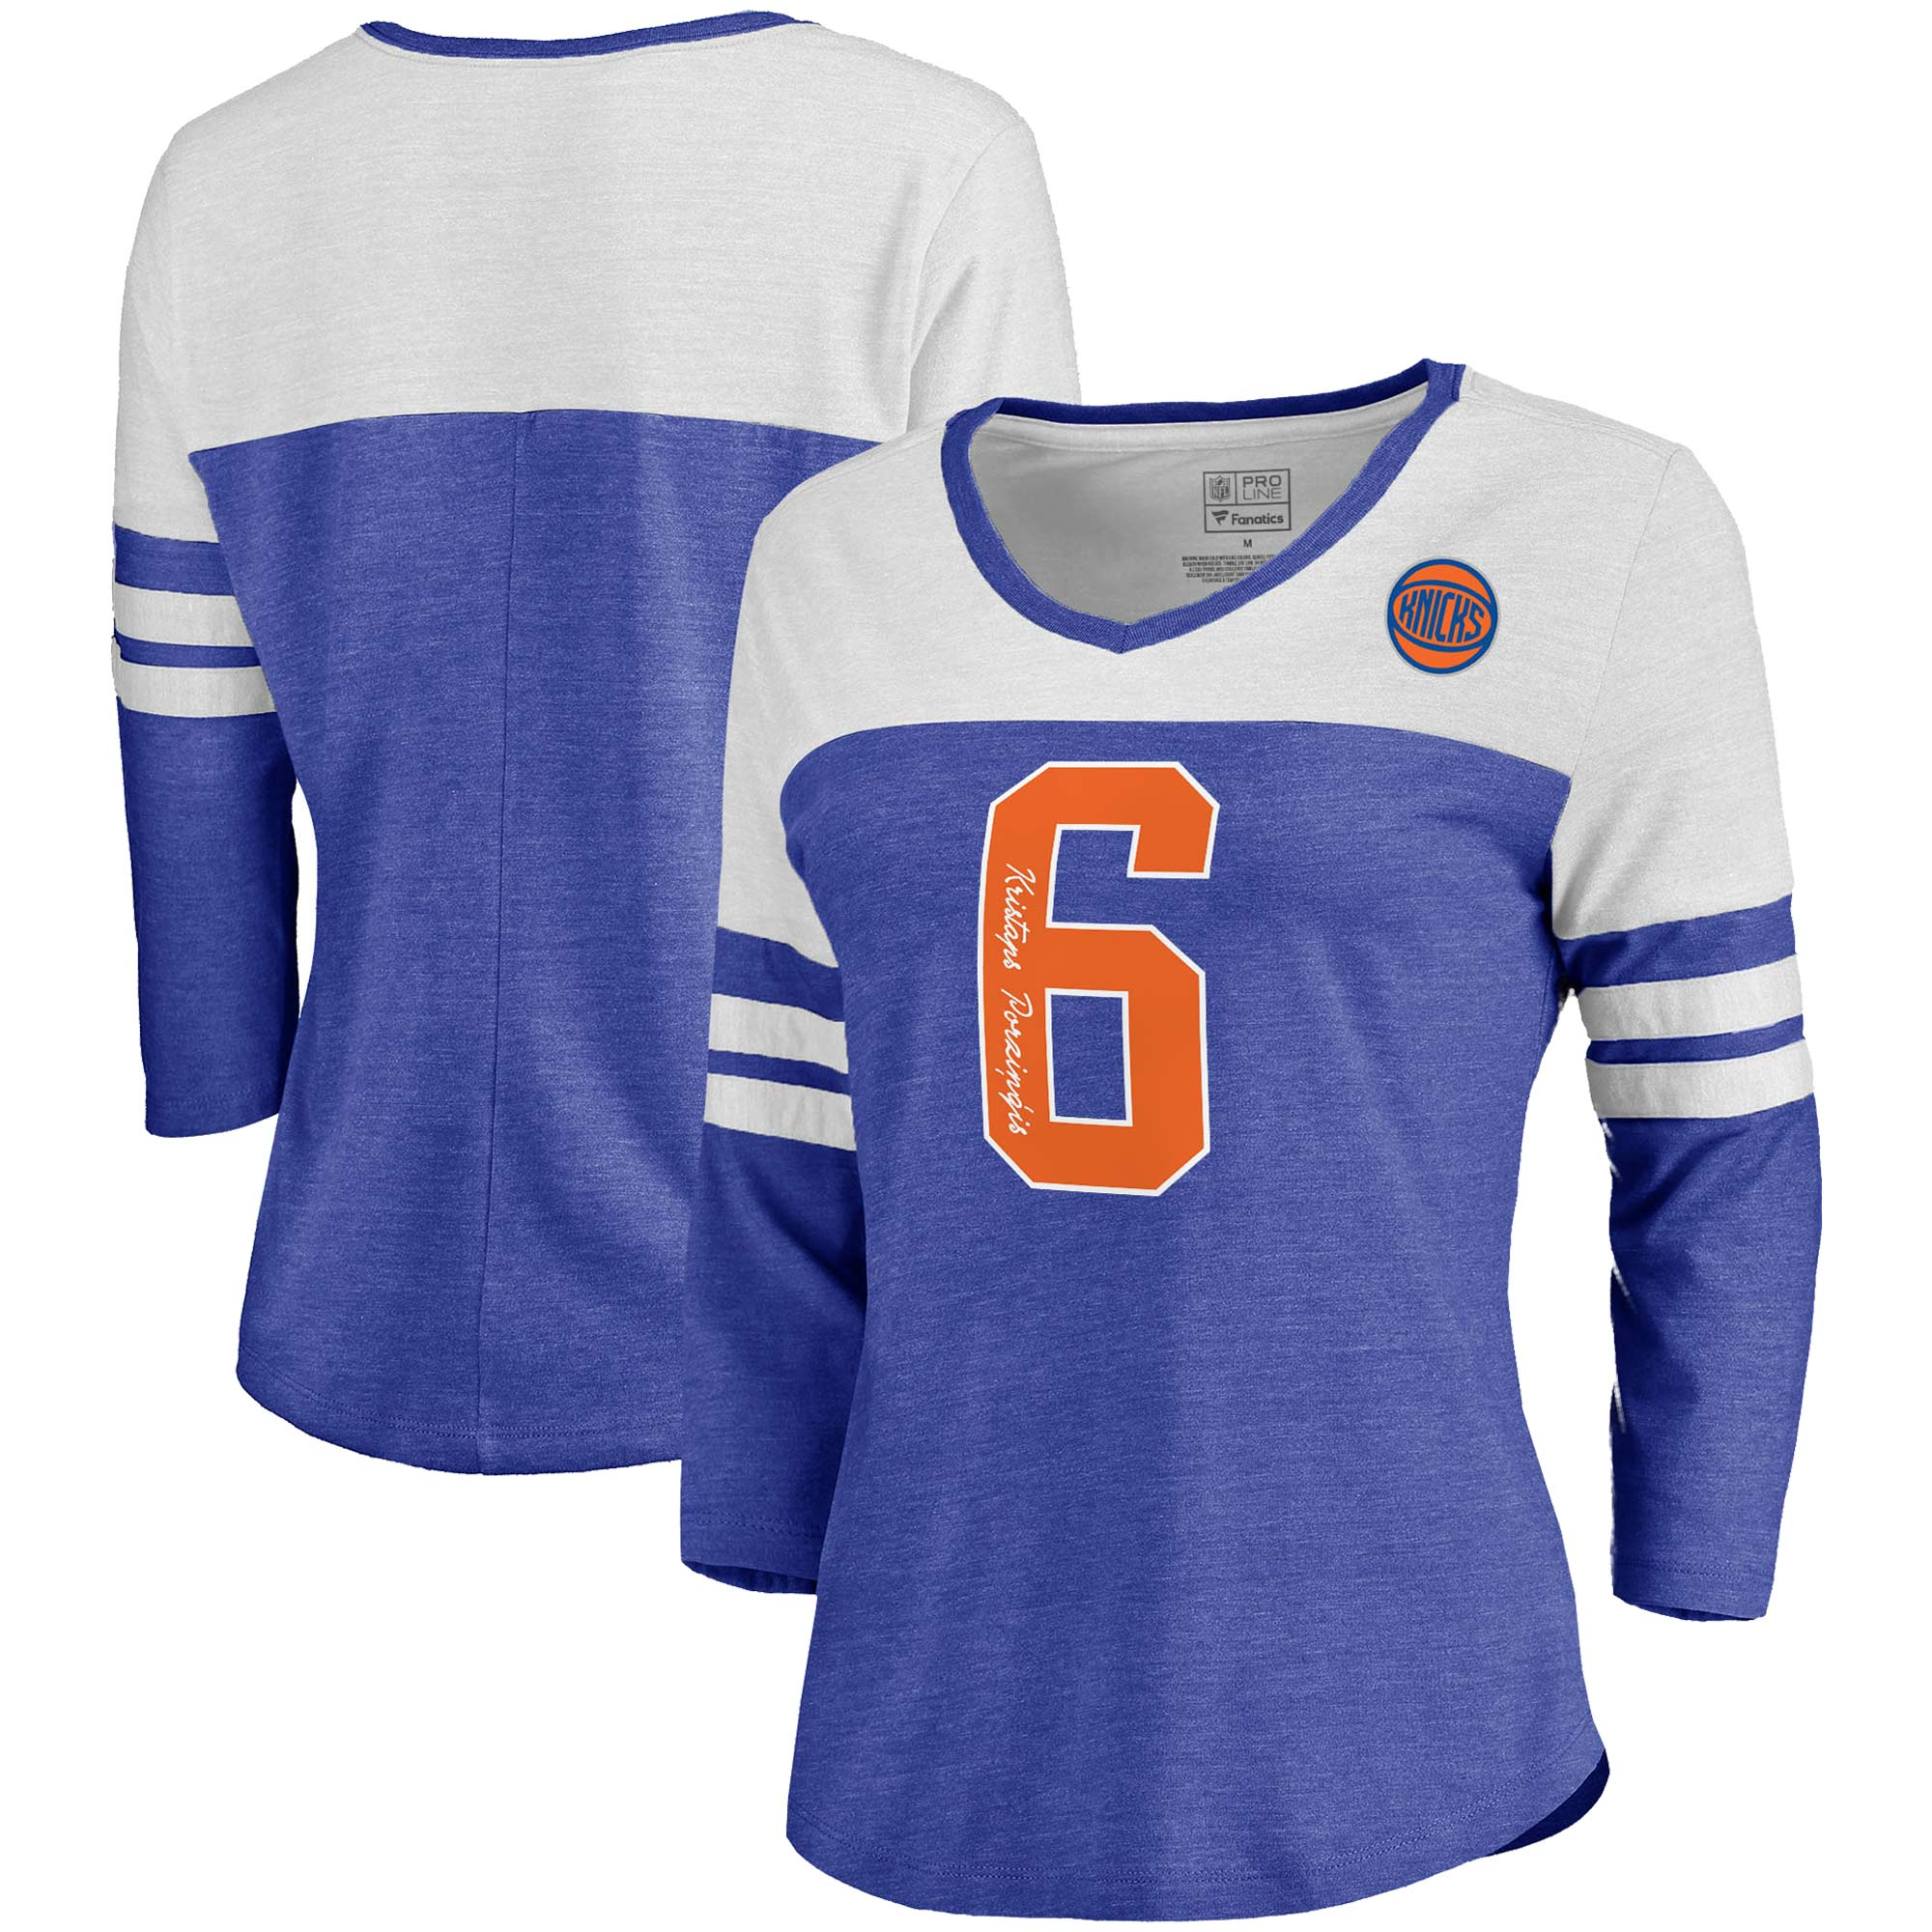 Kristaps Porzingis New York Knicks Fanatics Branded Women's Starstruck Name & Number Tri-Blend 3/4-Sleeve V-Neck T-Shirt - Blue